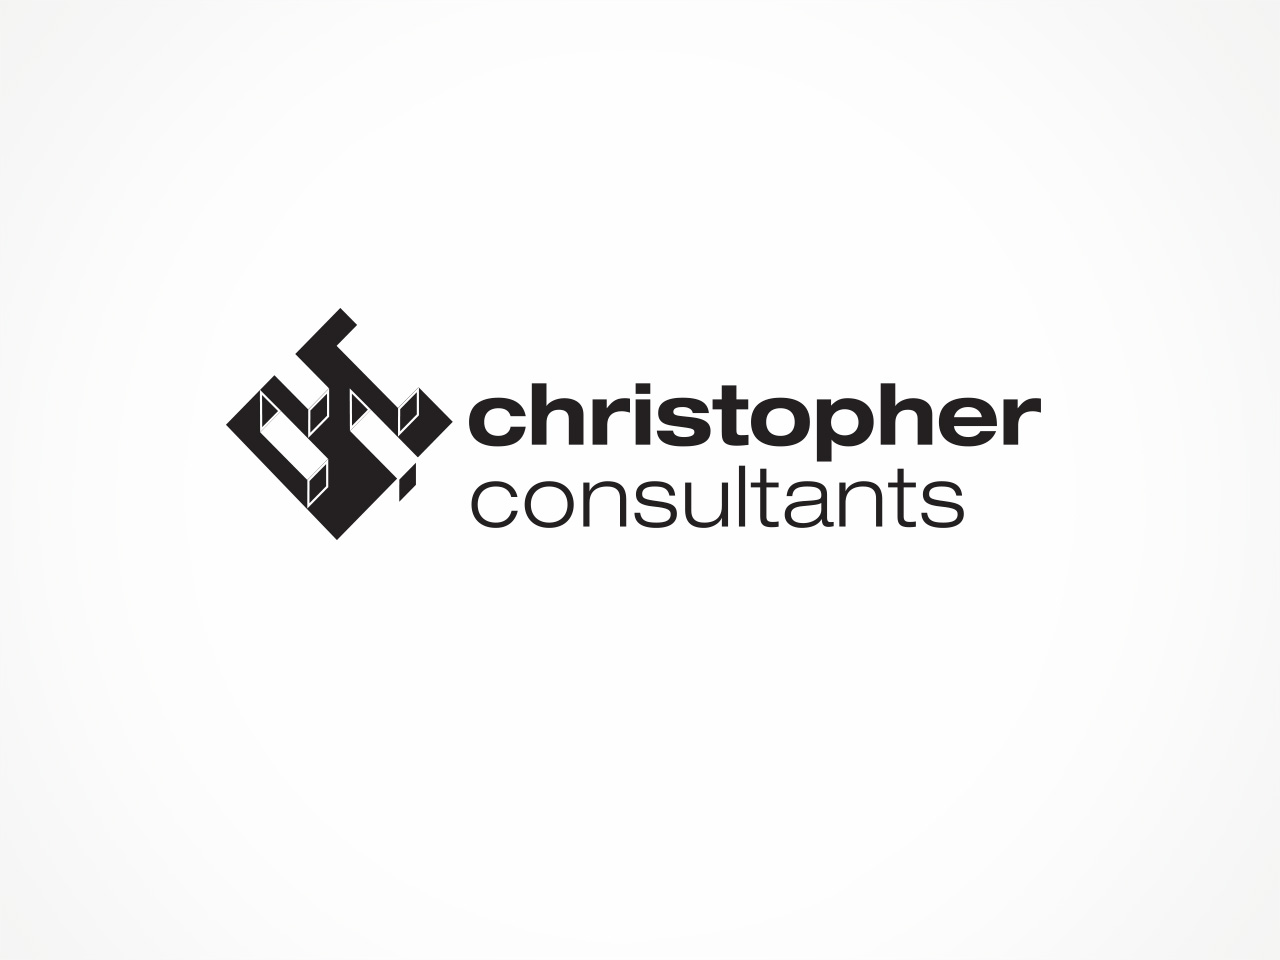 Christopher Consultants logo